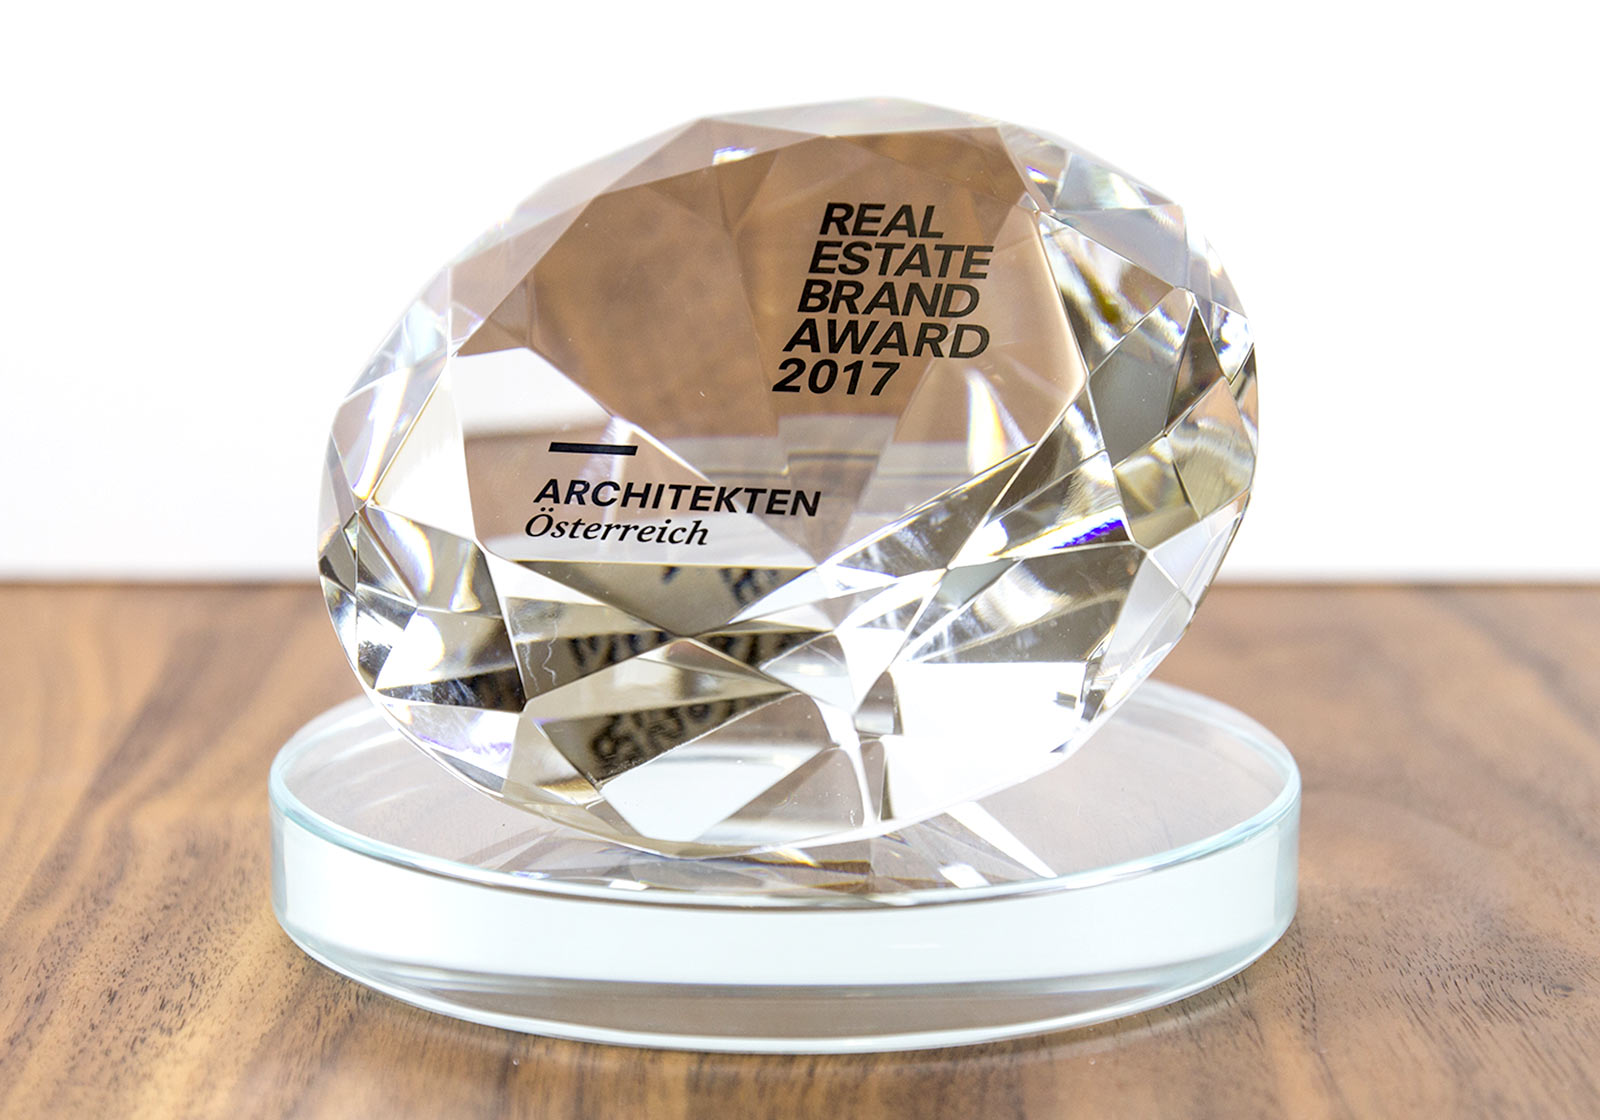 Real Estate Brand Award 2017. Photo: EUREB Institute/Philip Miram